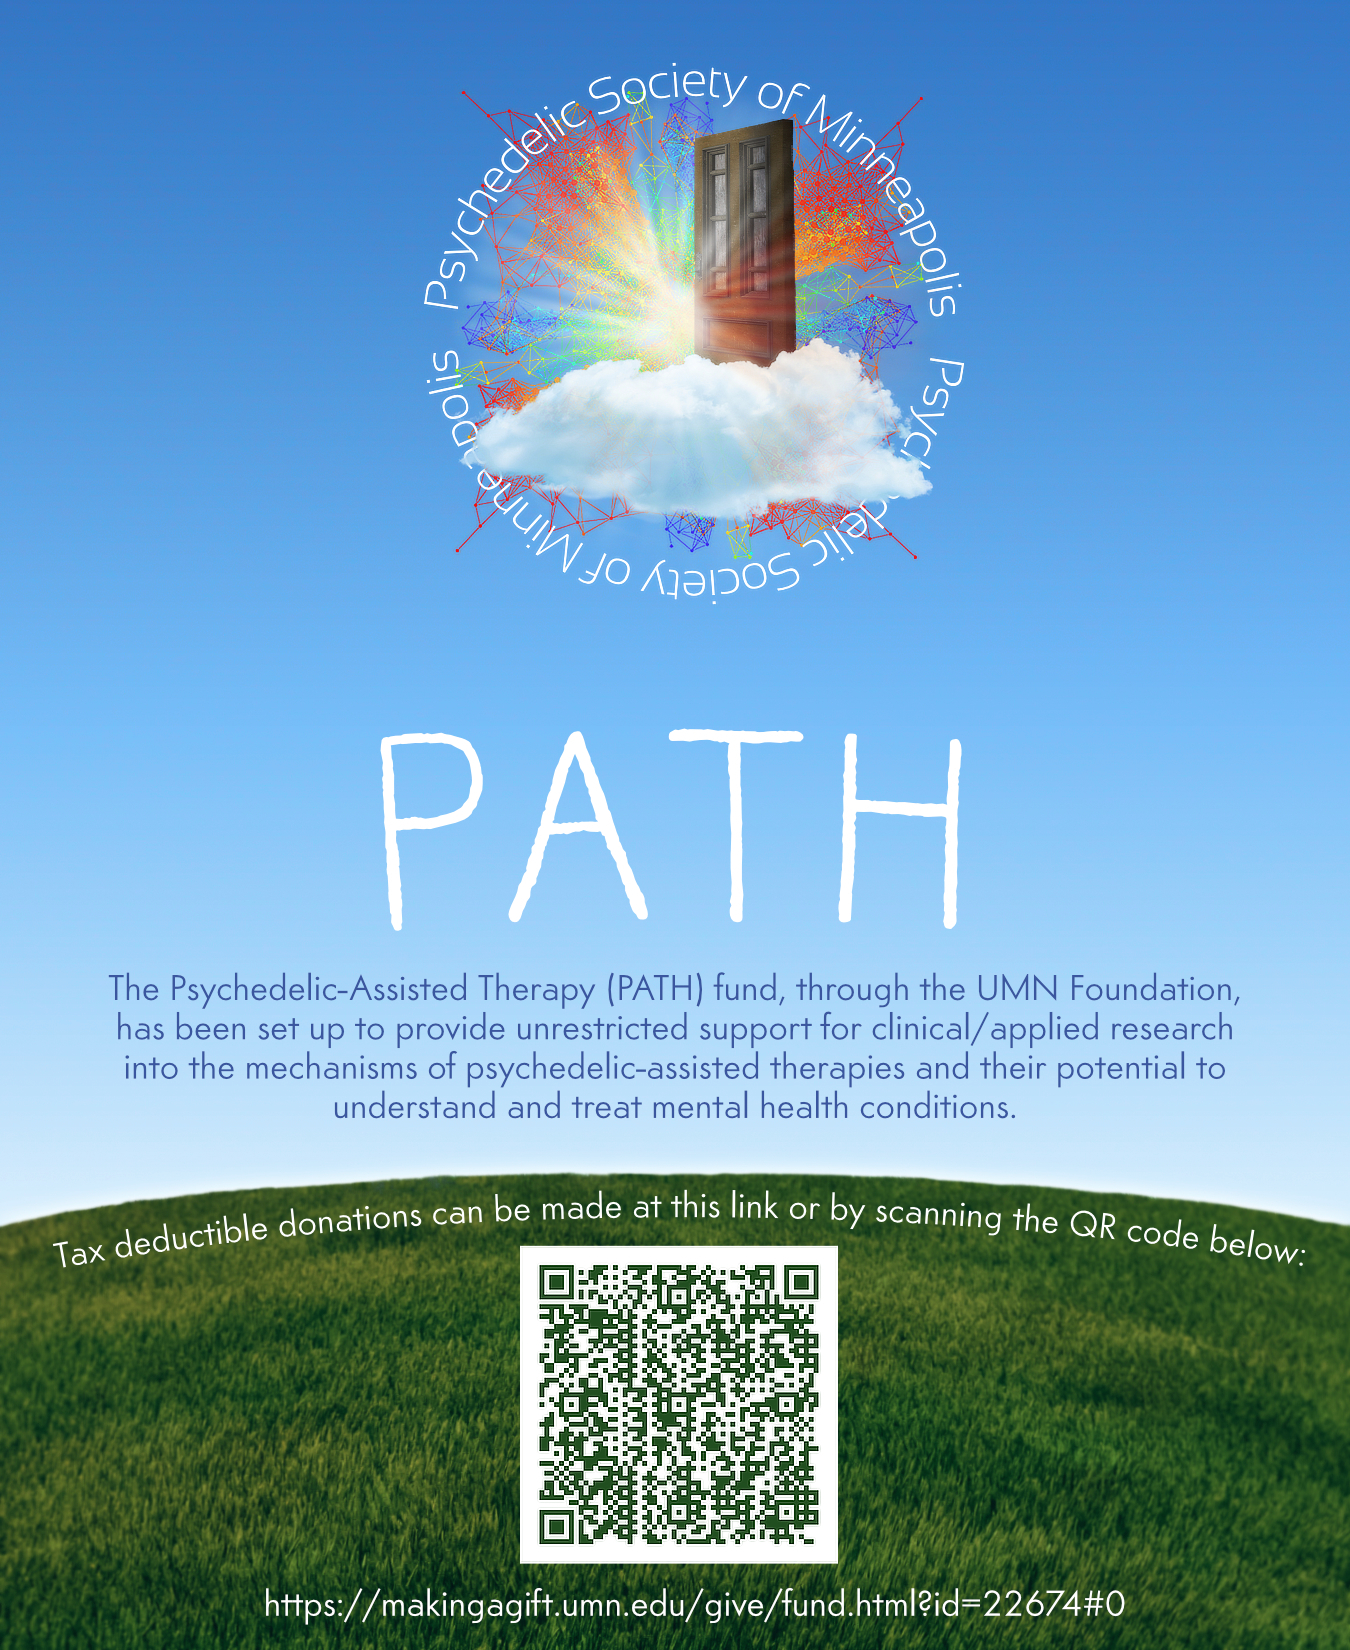 Want to support psychedelic research at University of Minnesota?? - Tax deductible donations can be made through the UMN Foundation!